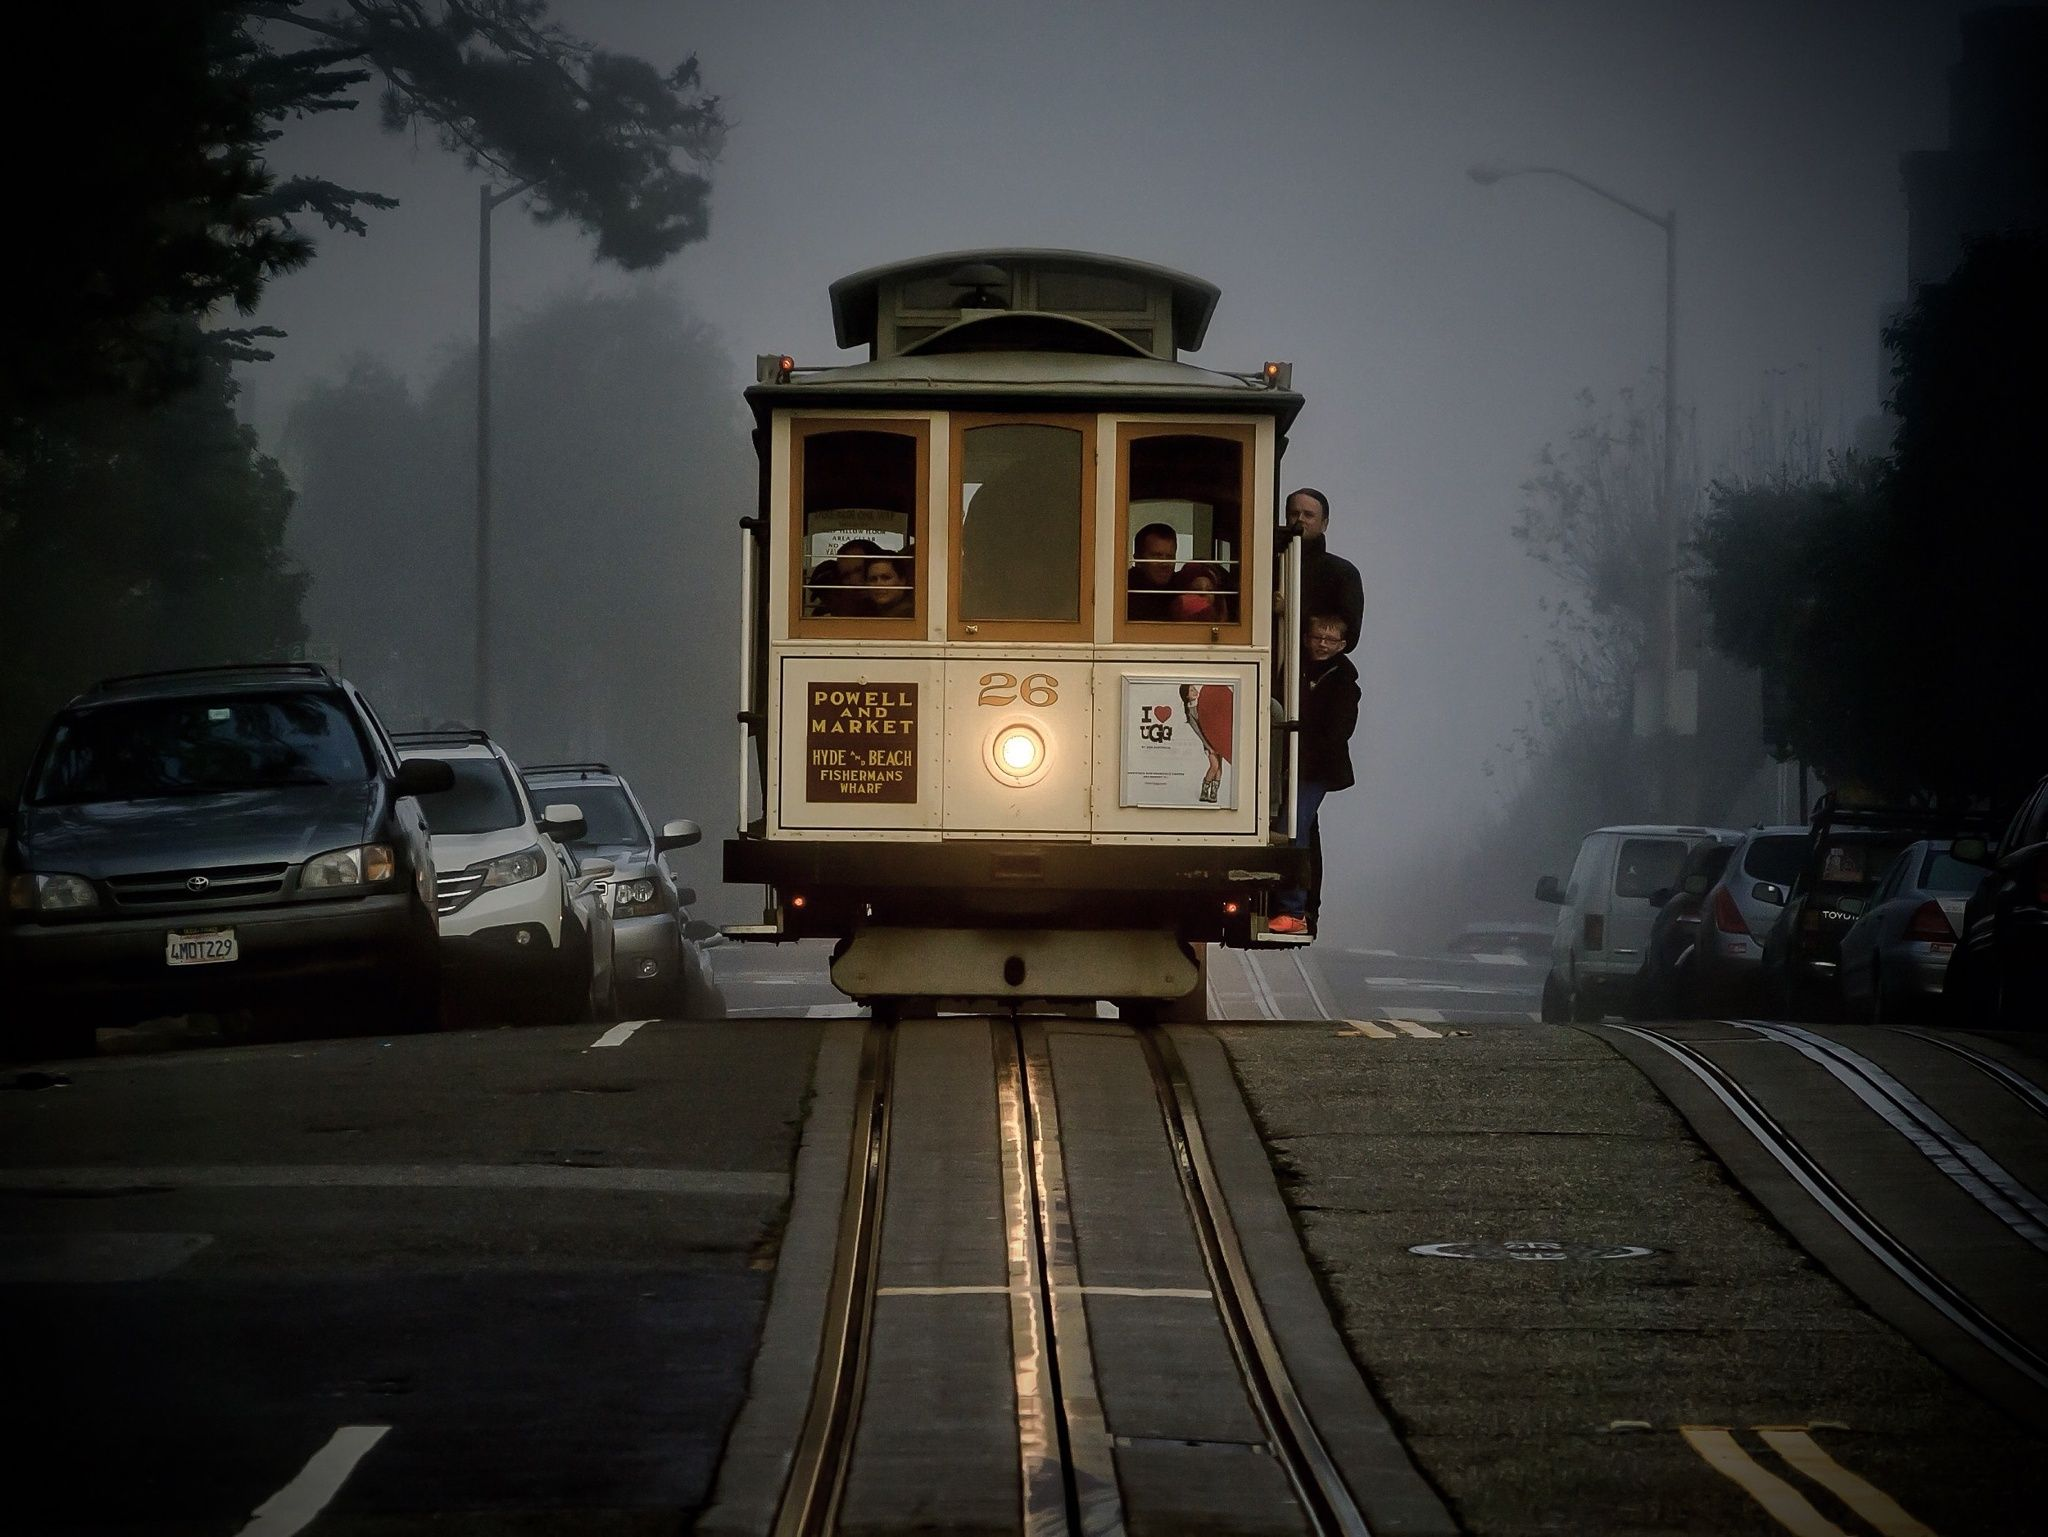 SF Cable Car No. 26 by T. Malachi Dunworth  on 500px